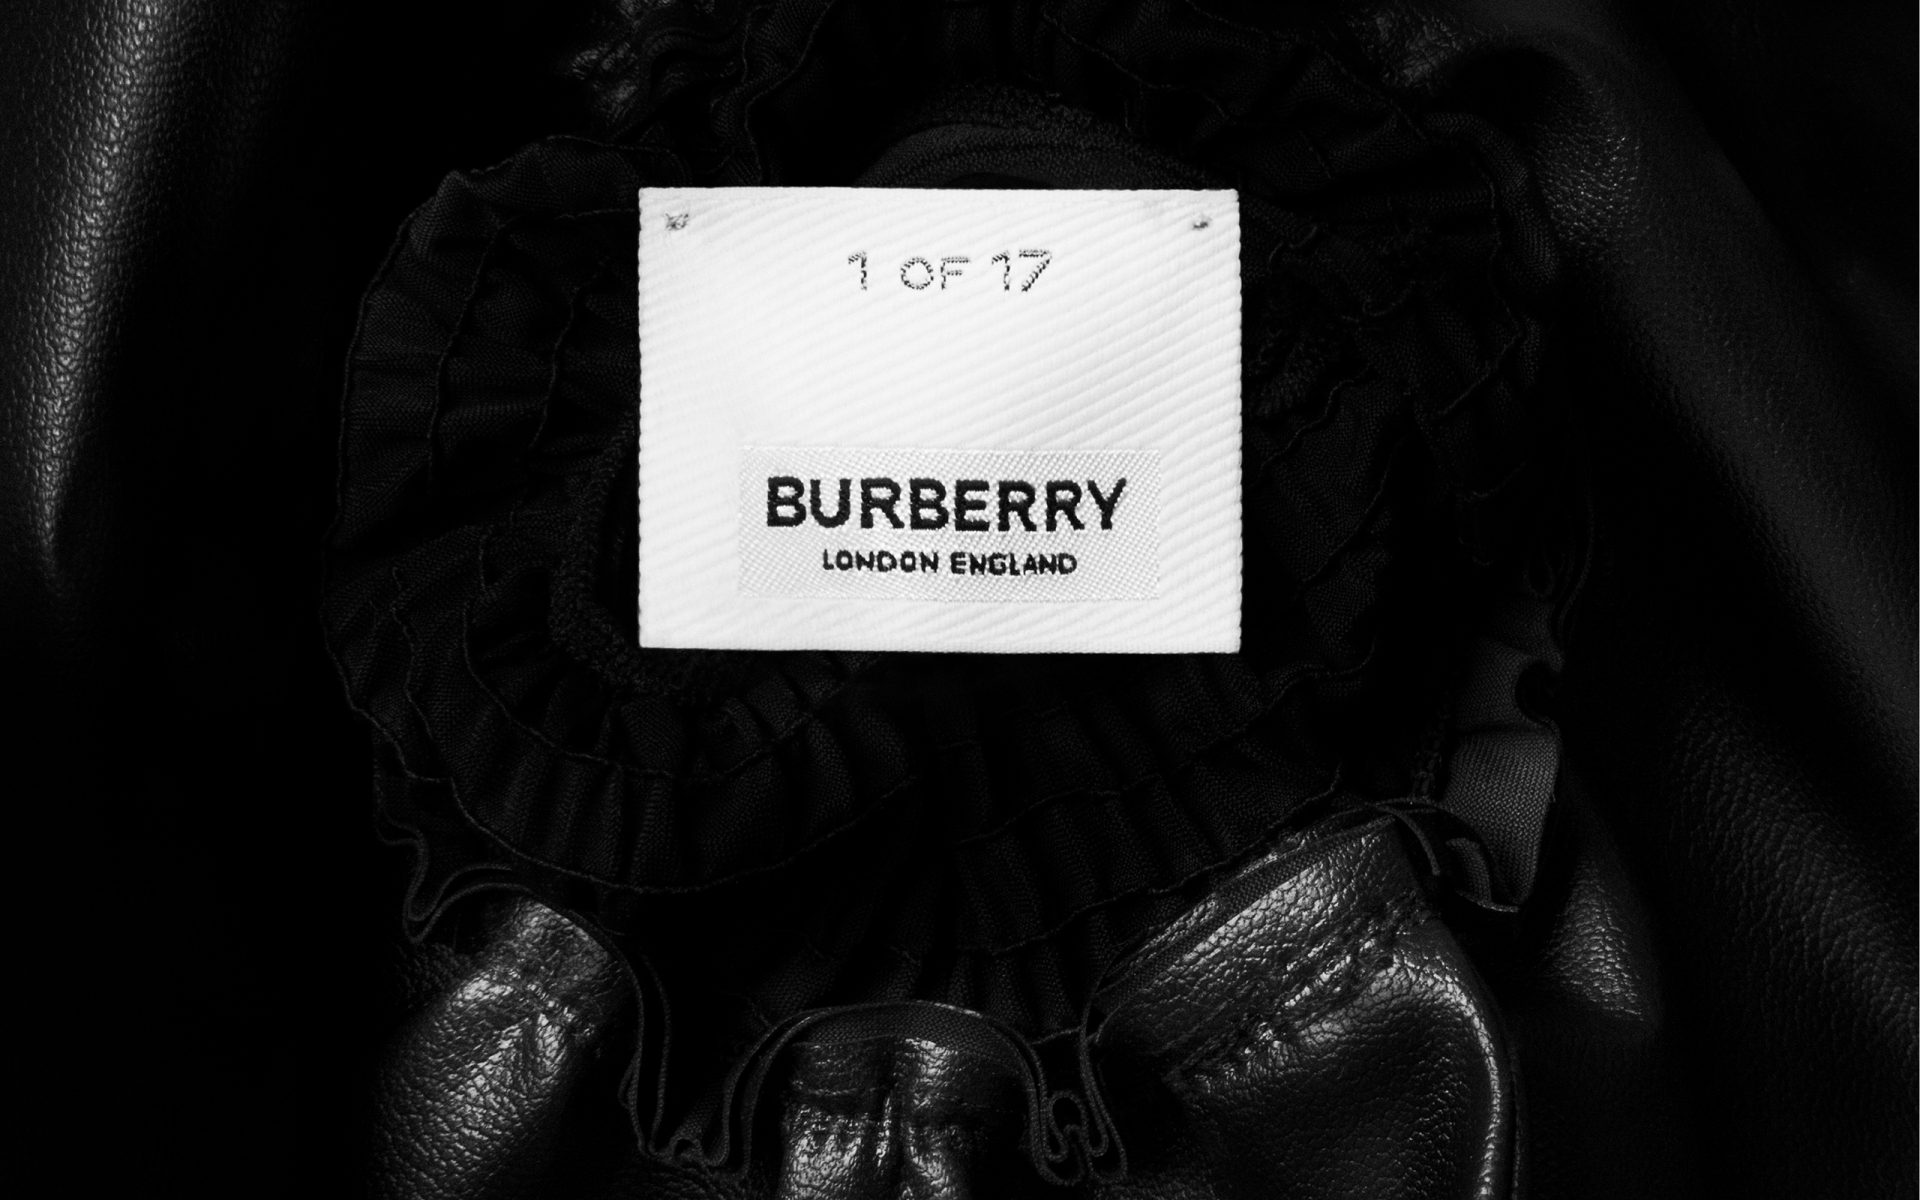 © Courtesy of Burberry